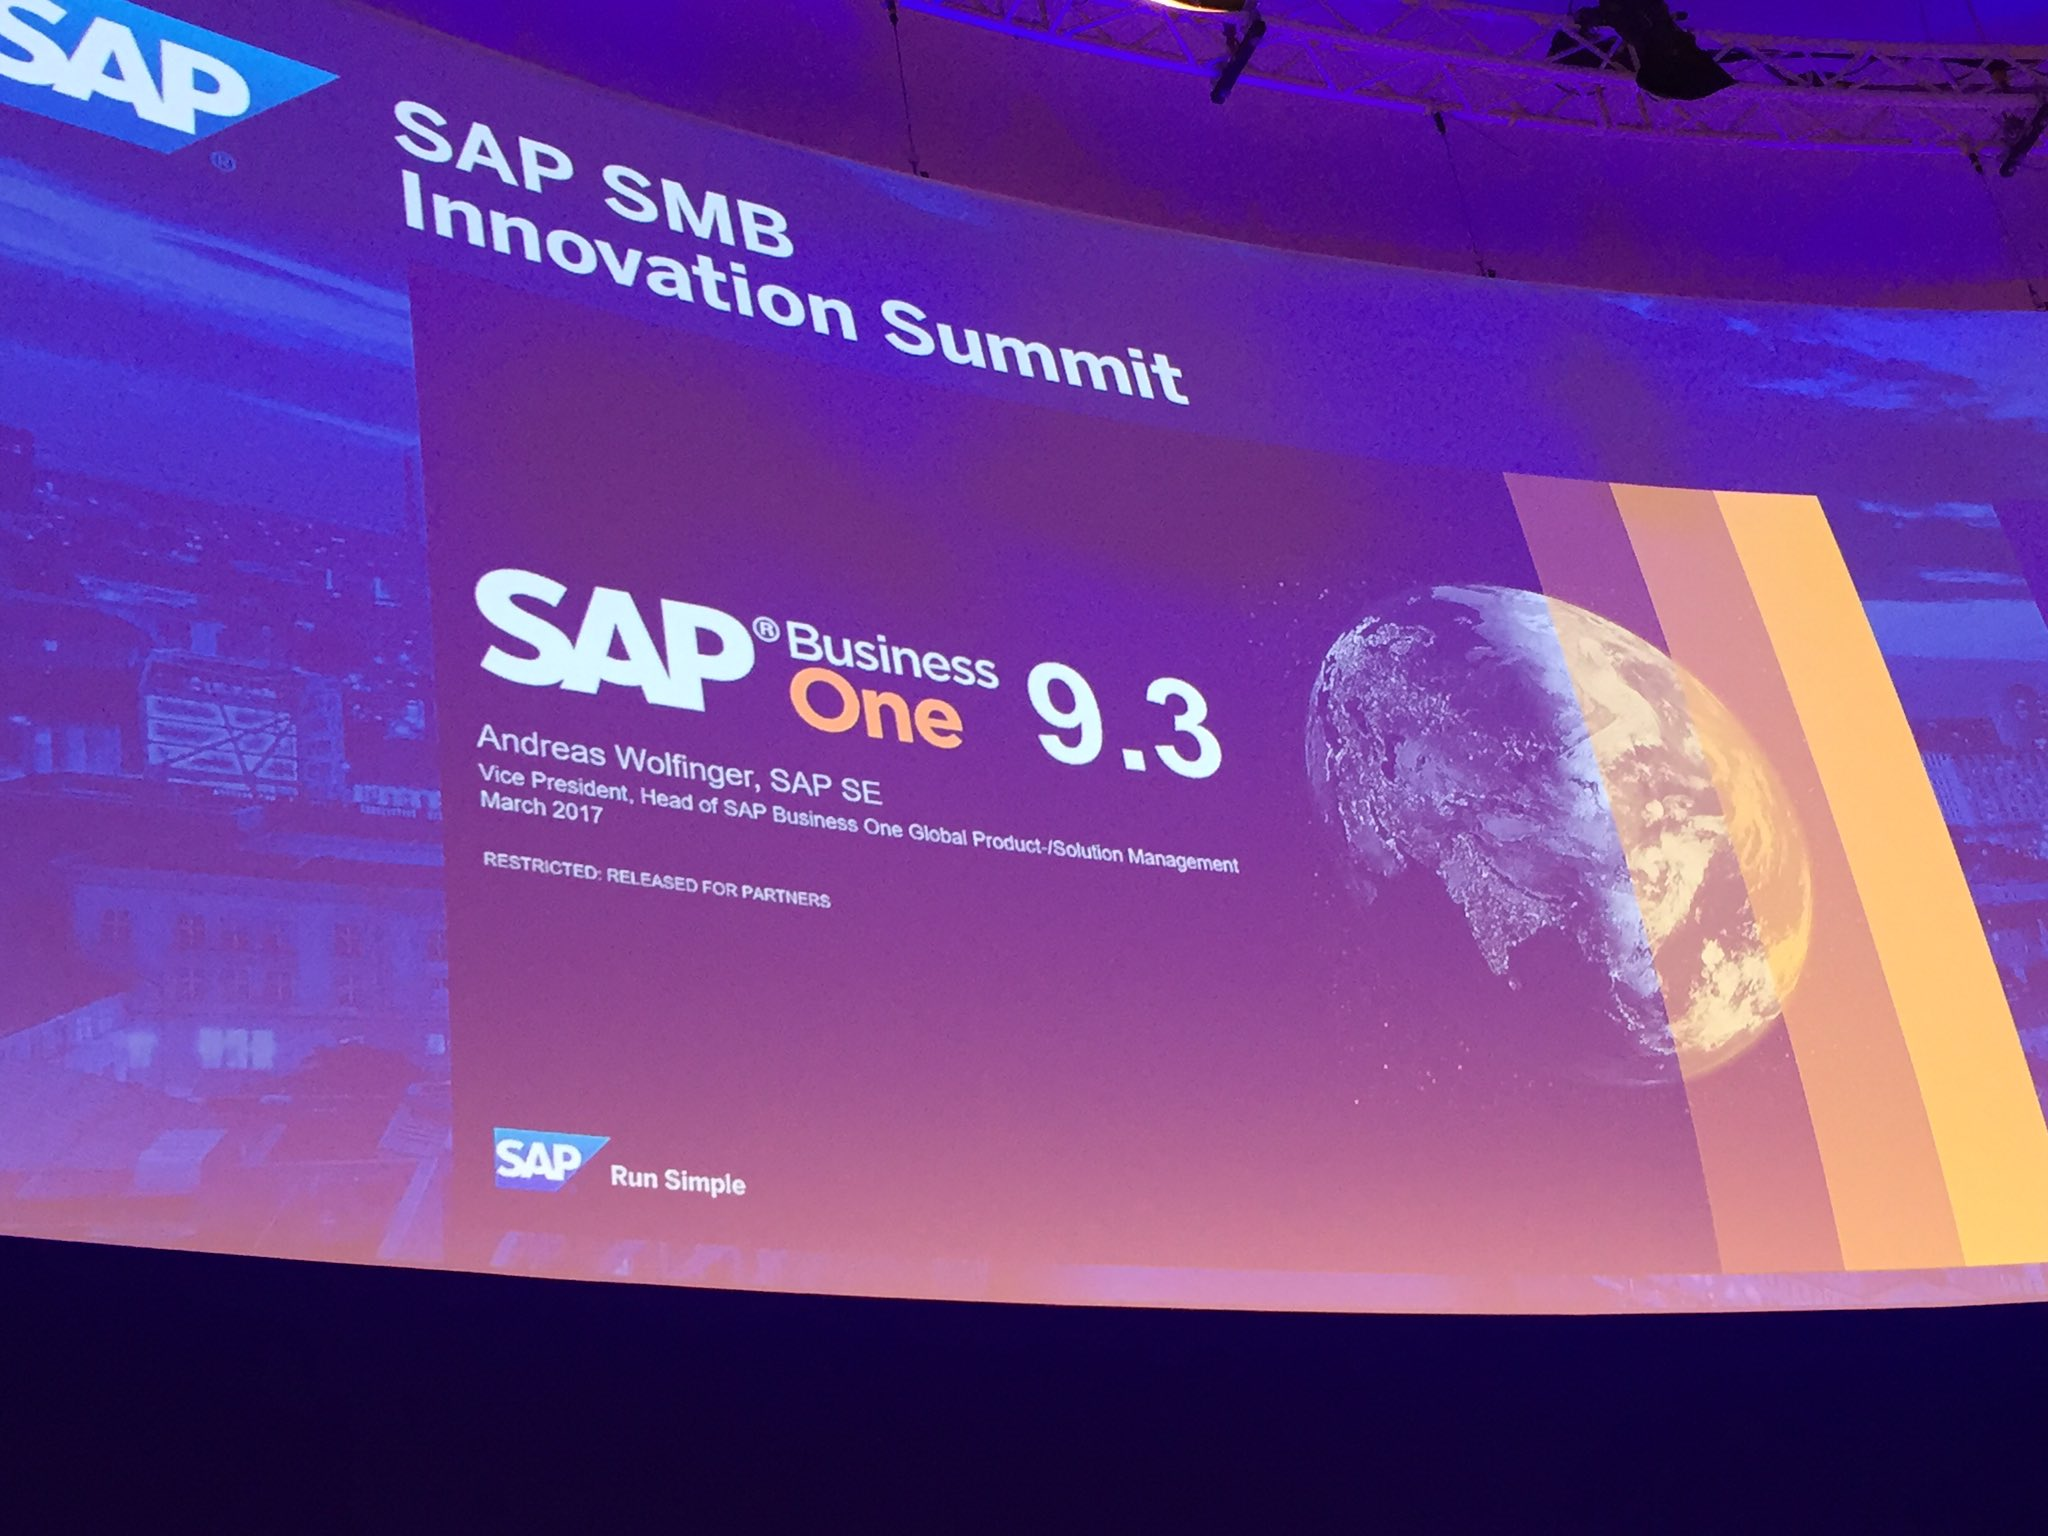 SAP Announced SAP Business One 9.3